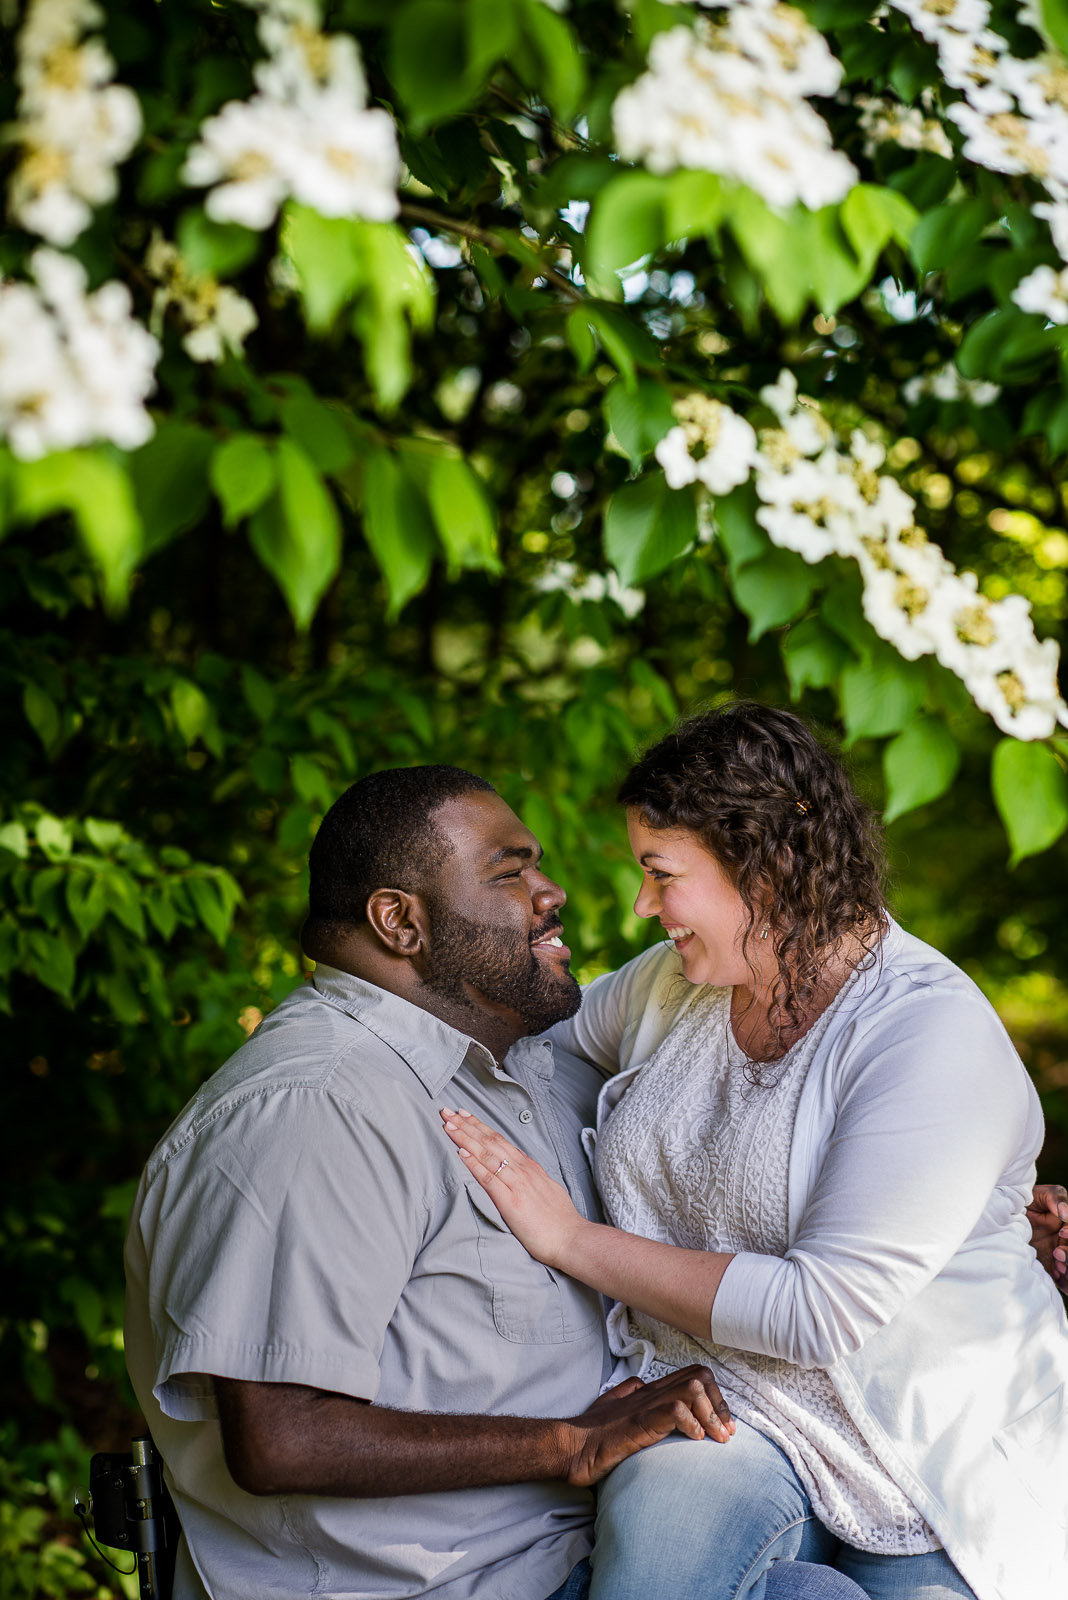 Eric_and_Christy_Photography_Blog_Laura_Jamal_Engagement-20